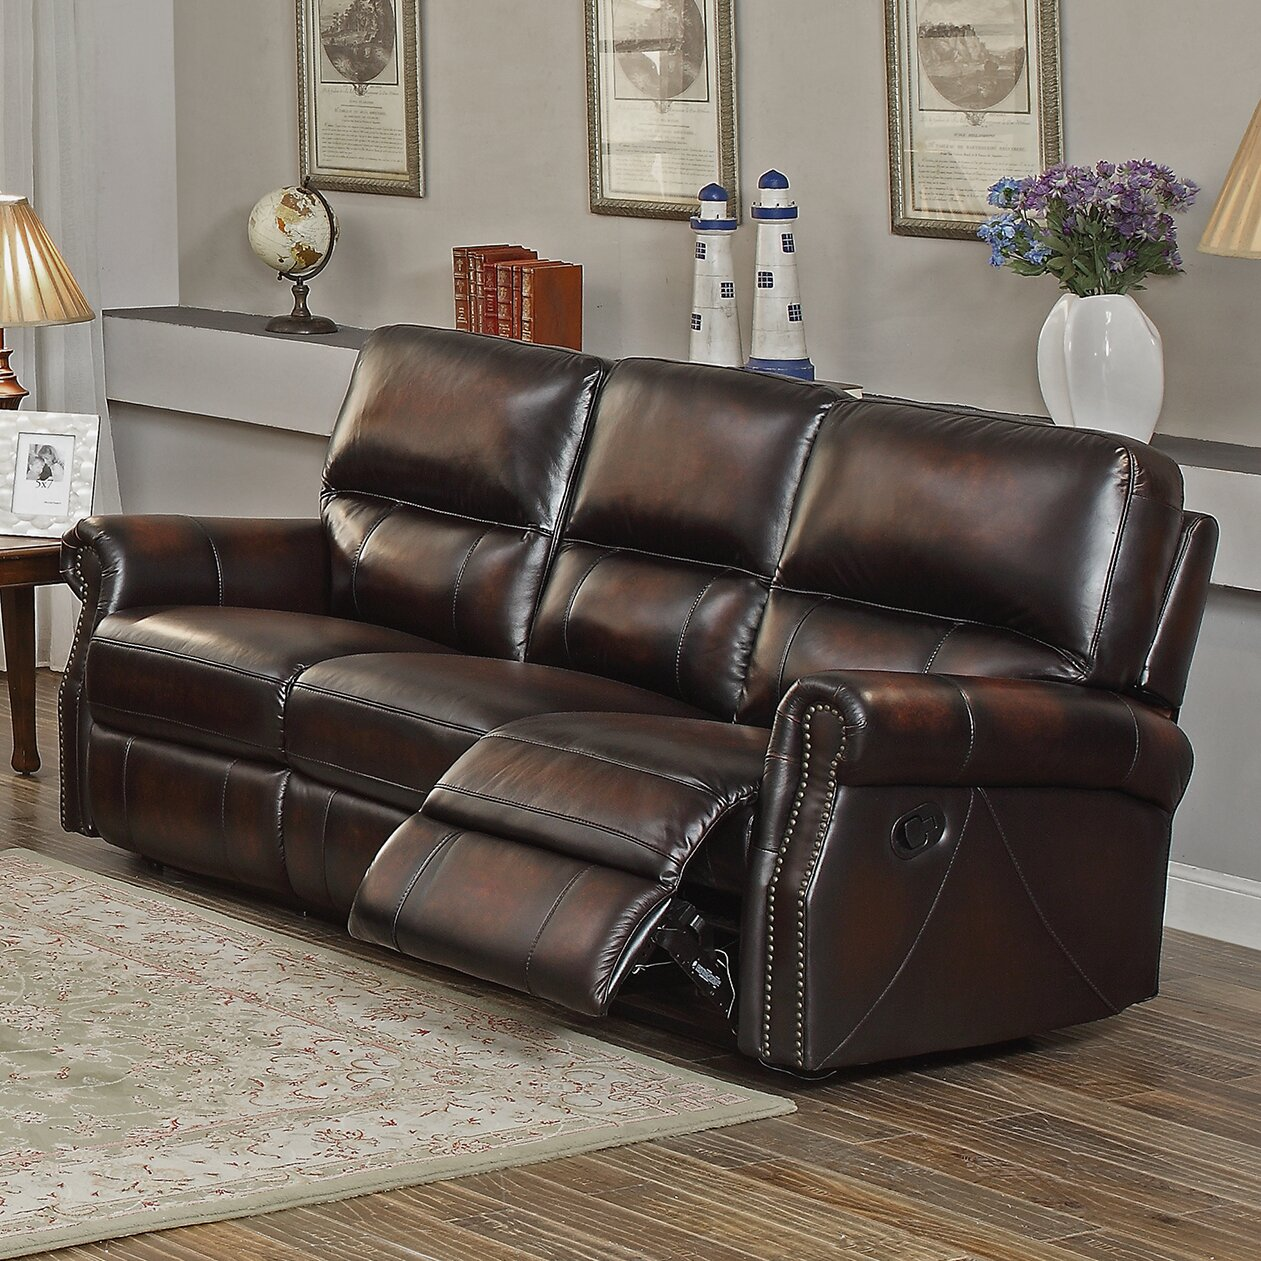 Amax nevada 3 piece leather living room set